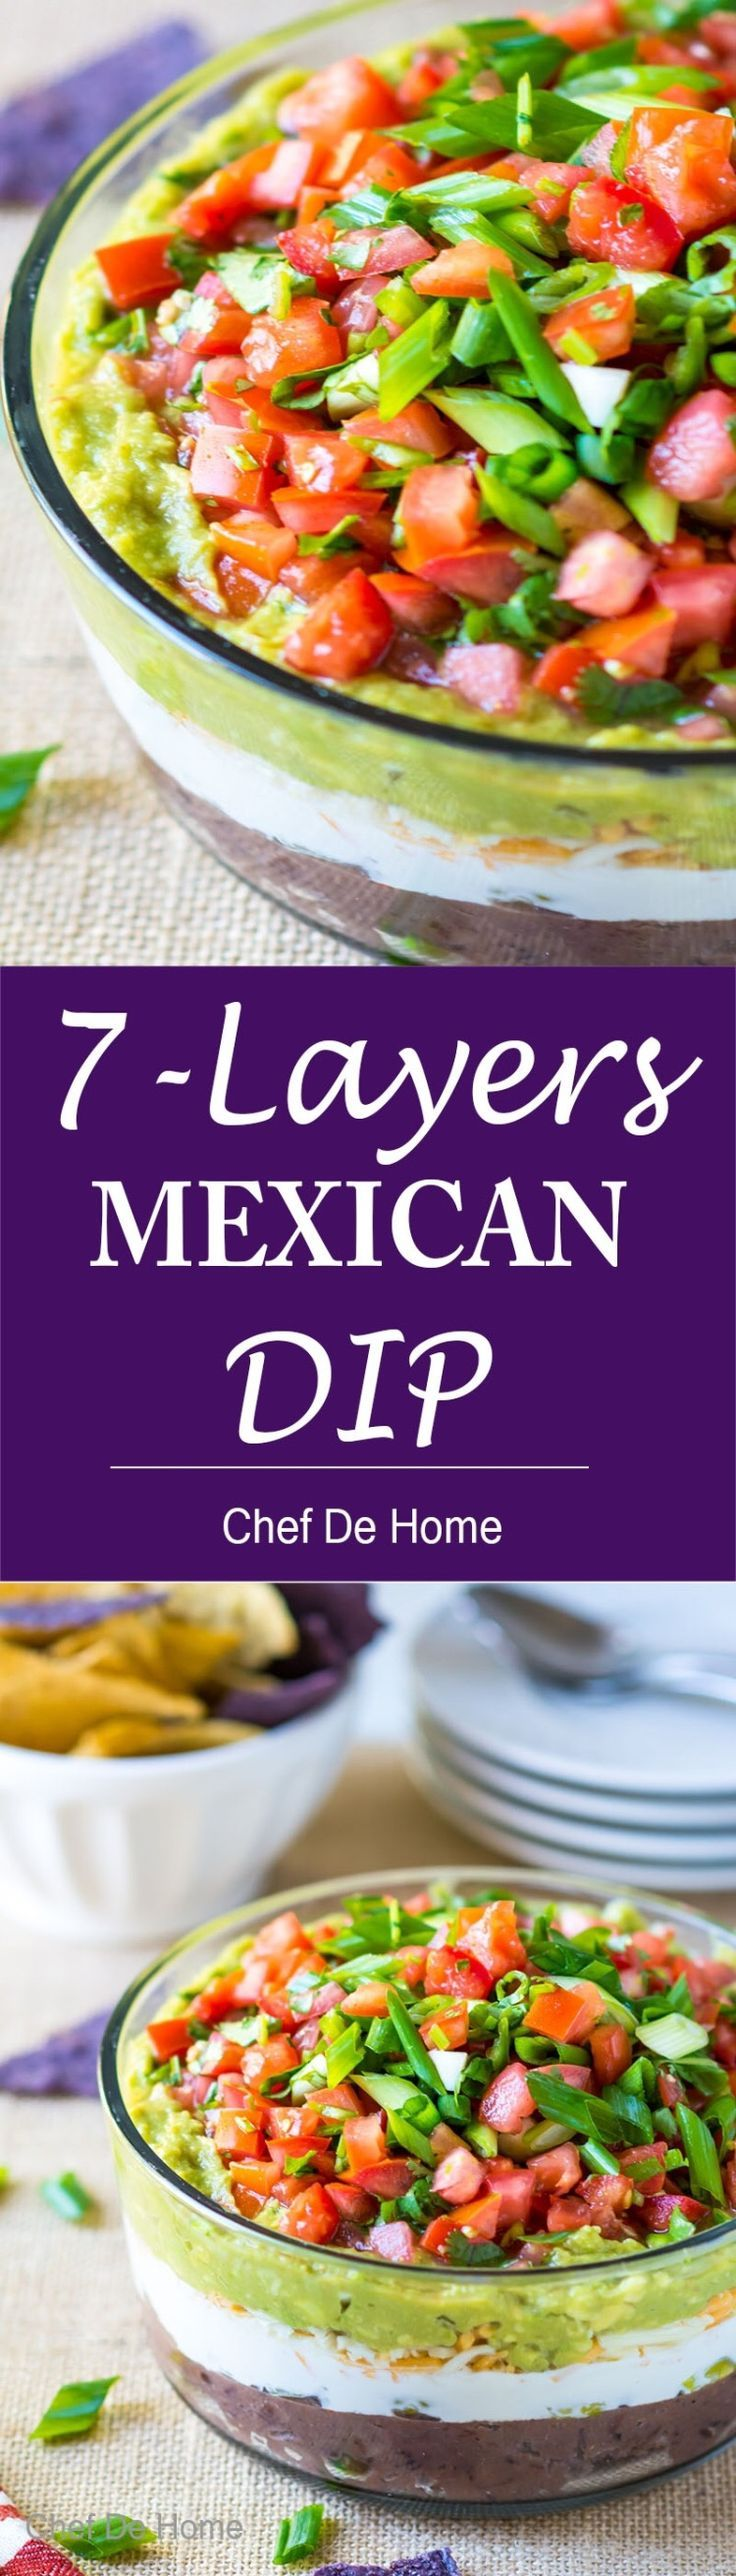 7 Layer Mexican Dip with black beans and sour cream and simple hack to not have runny cream layer!   www.chefdehome.com/